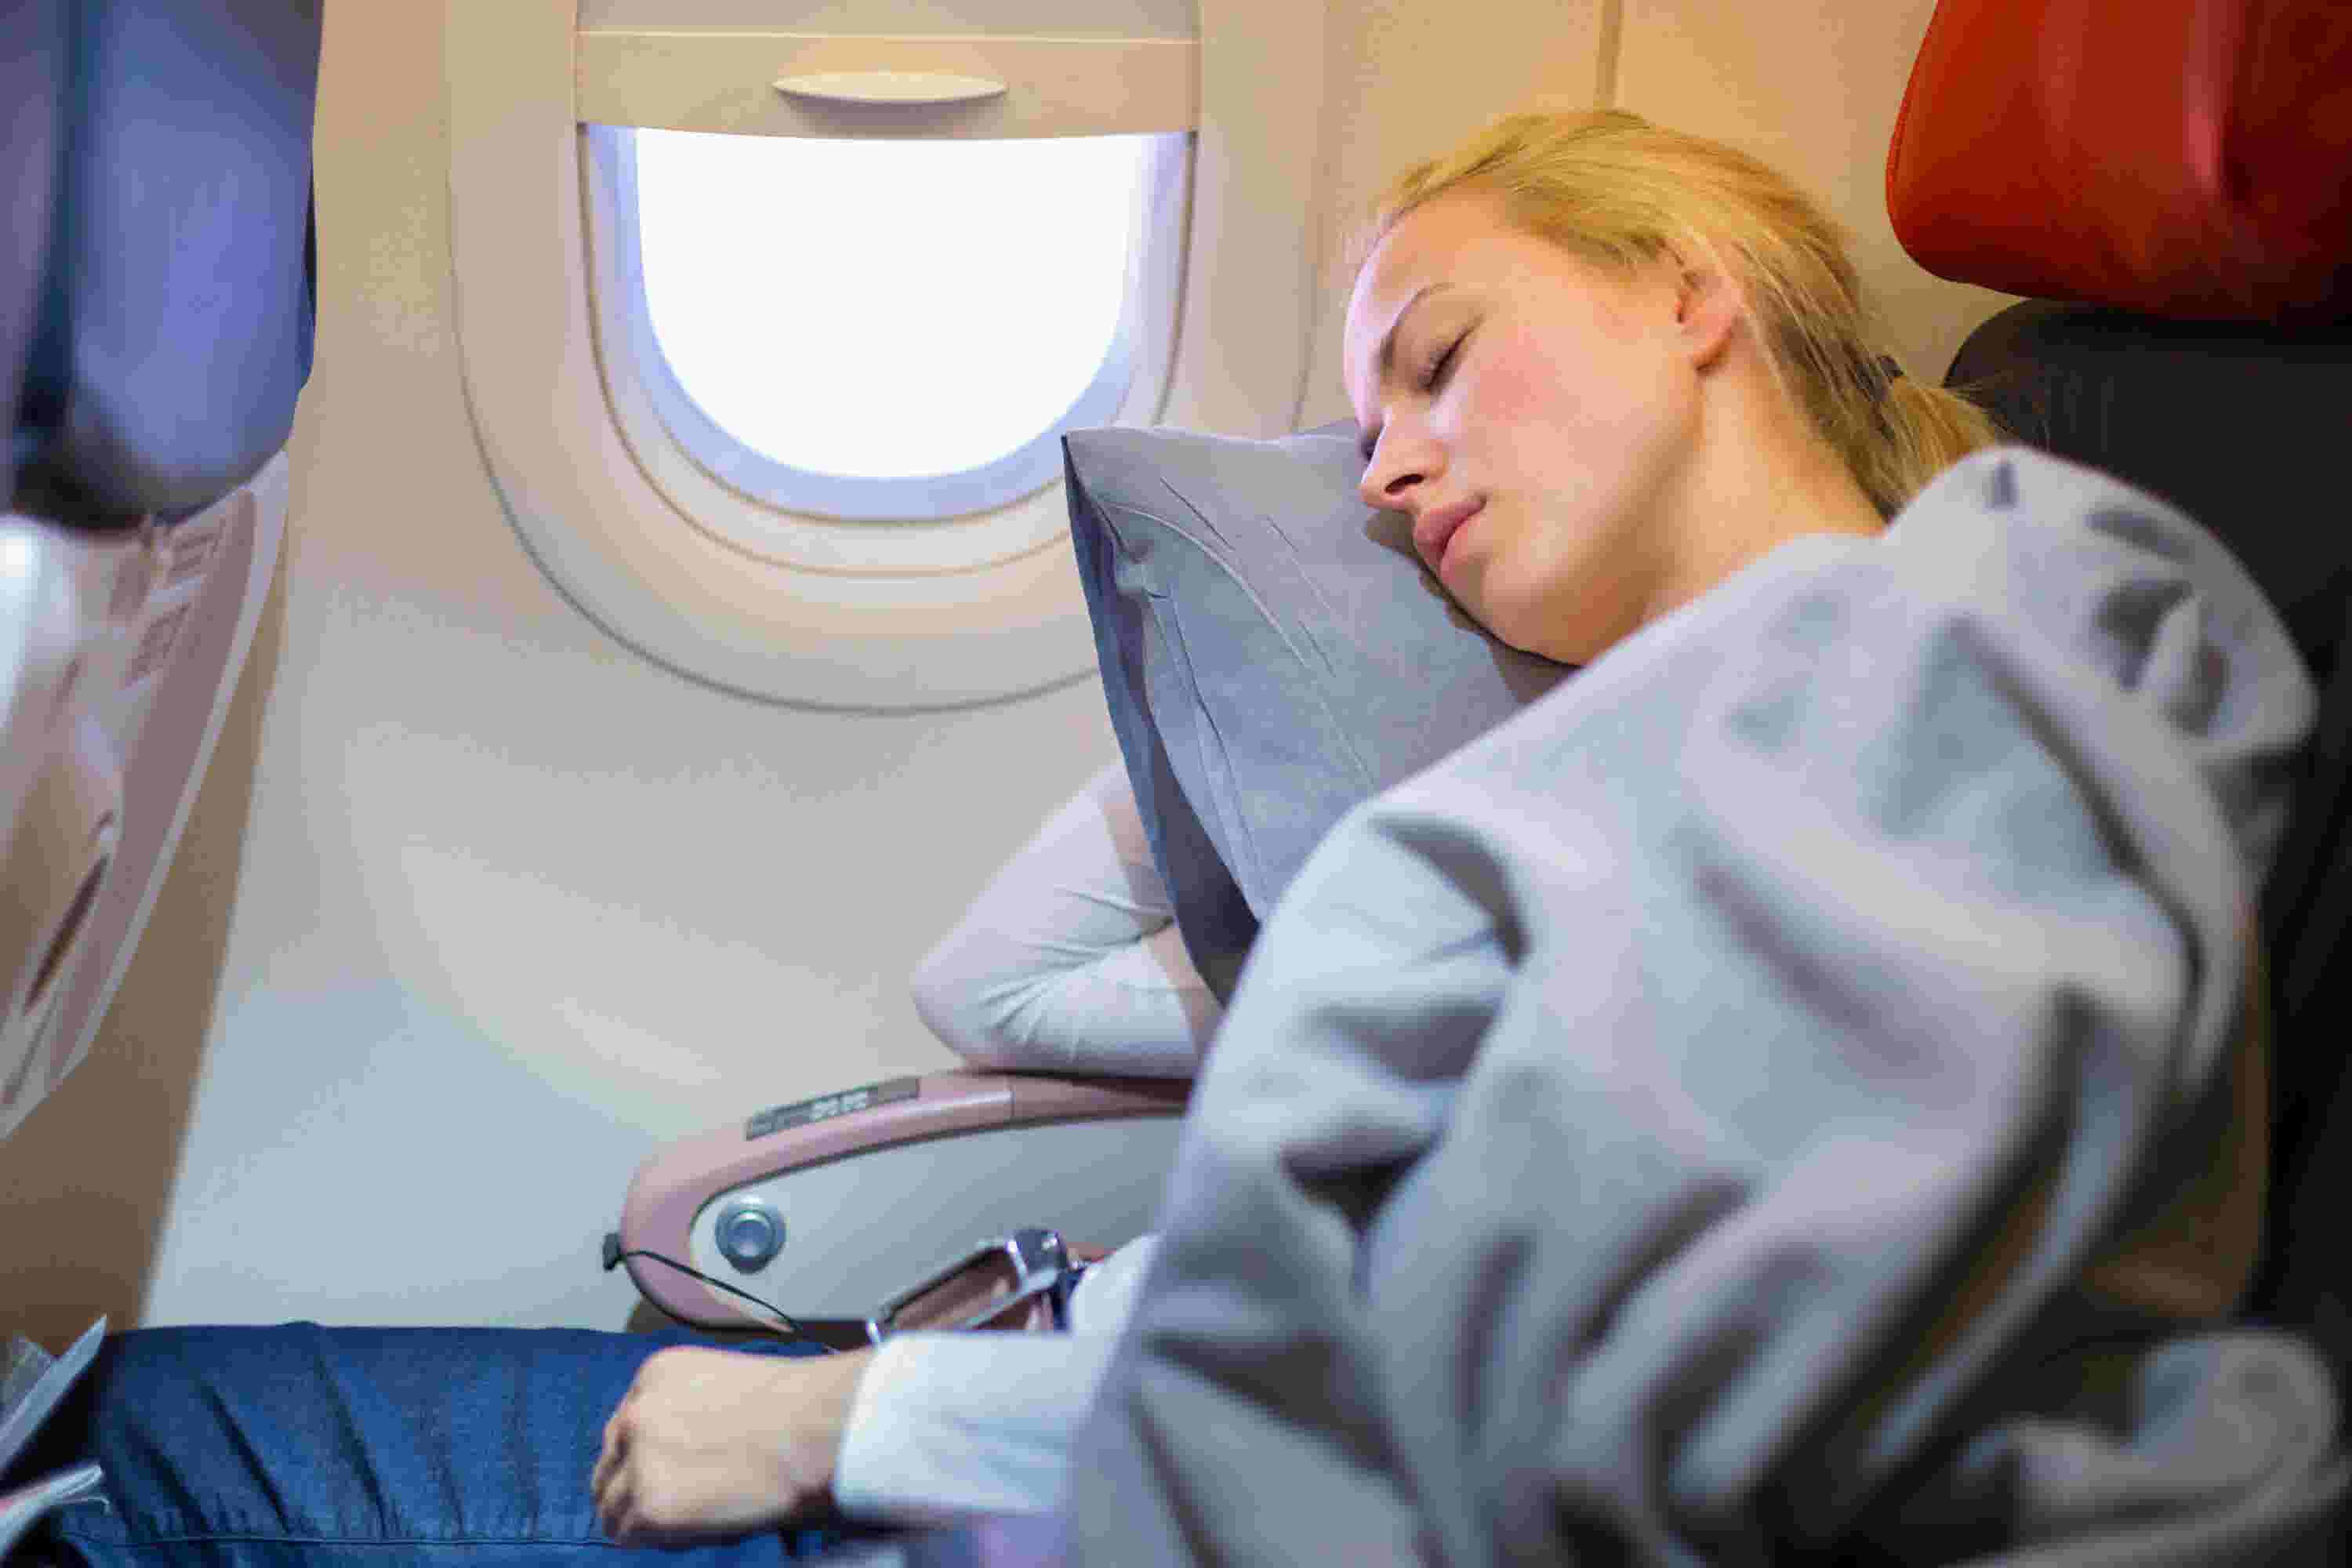 5 things you need to survive a red eye